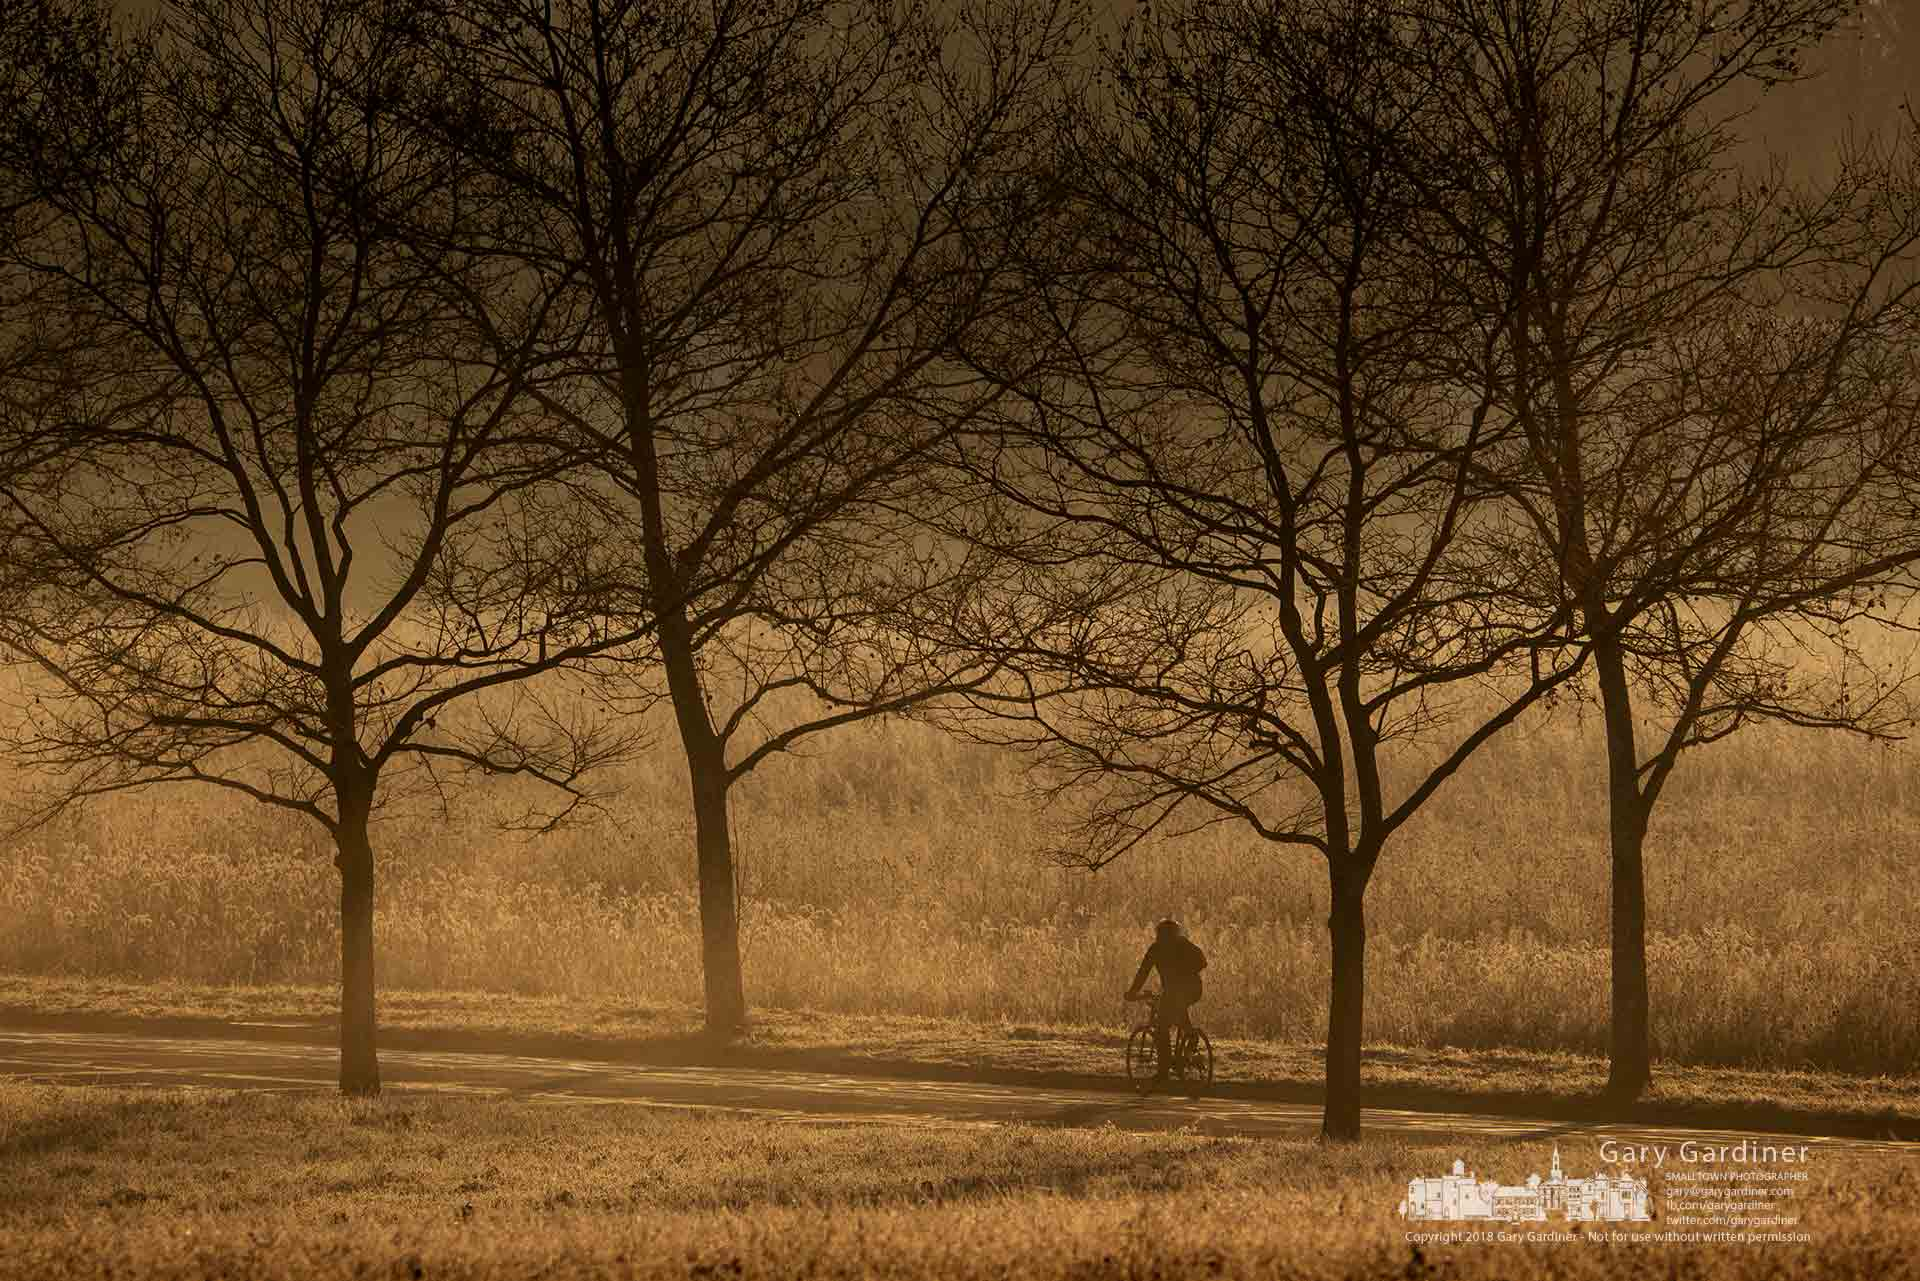 A bicyclist rides in the morning fog downhill along Cooper Road between to Braun Farm property and the Otterbein hay fields. My Final Photo for Dec. 17, 2018.